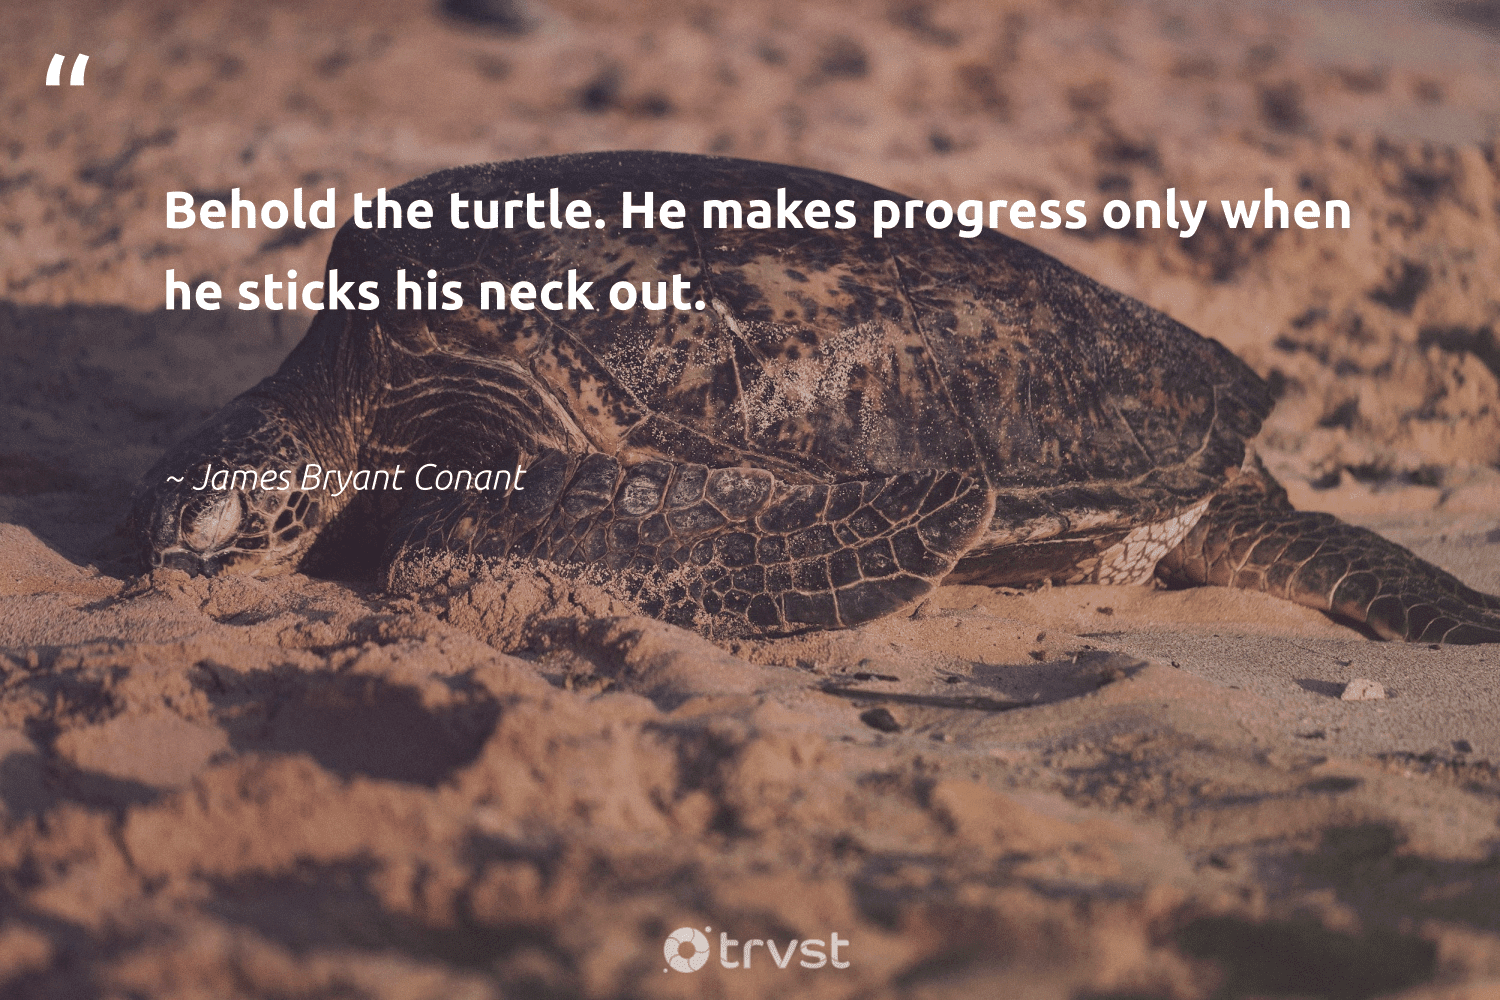 """""""Behold the turtle. He makes progress only when he sticks his neck out.""""  - James Bryant Conant #trvst #quotes #turtle #oceans #bethechange #oceanconservation #changetheworld #aquaticlife #beinspired #amazingworld #collectiveaction #savetheturtle"""